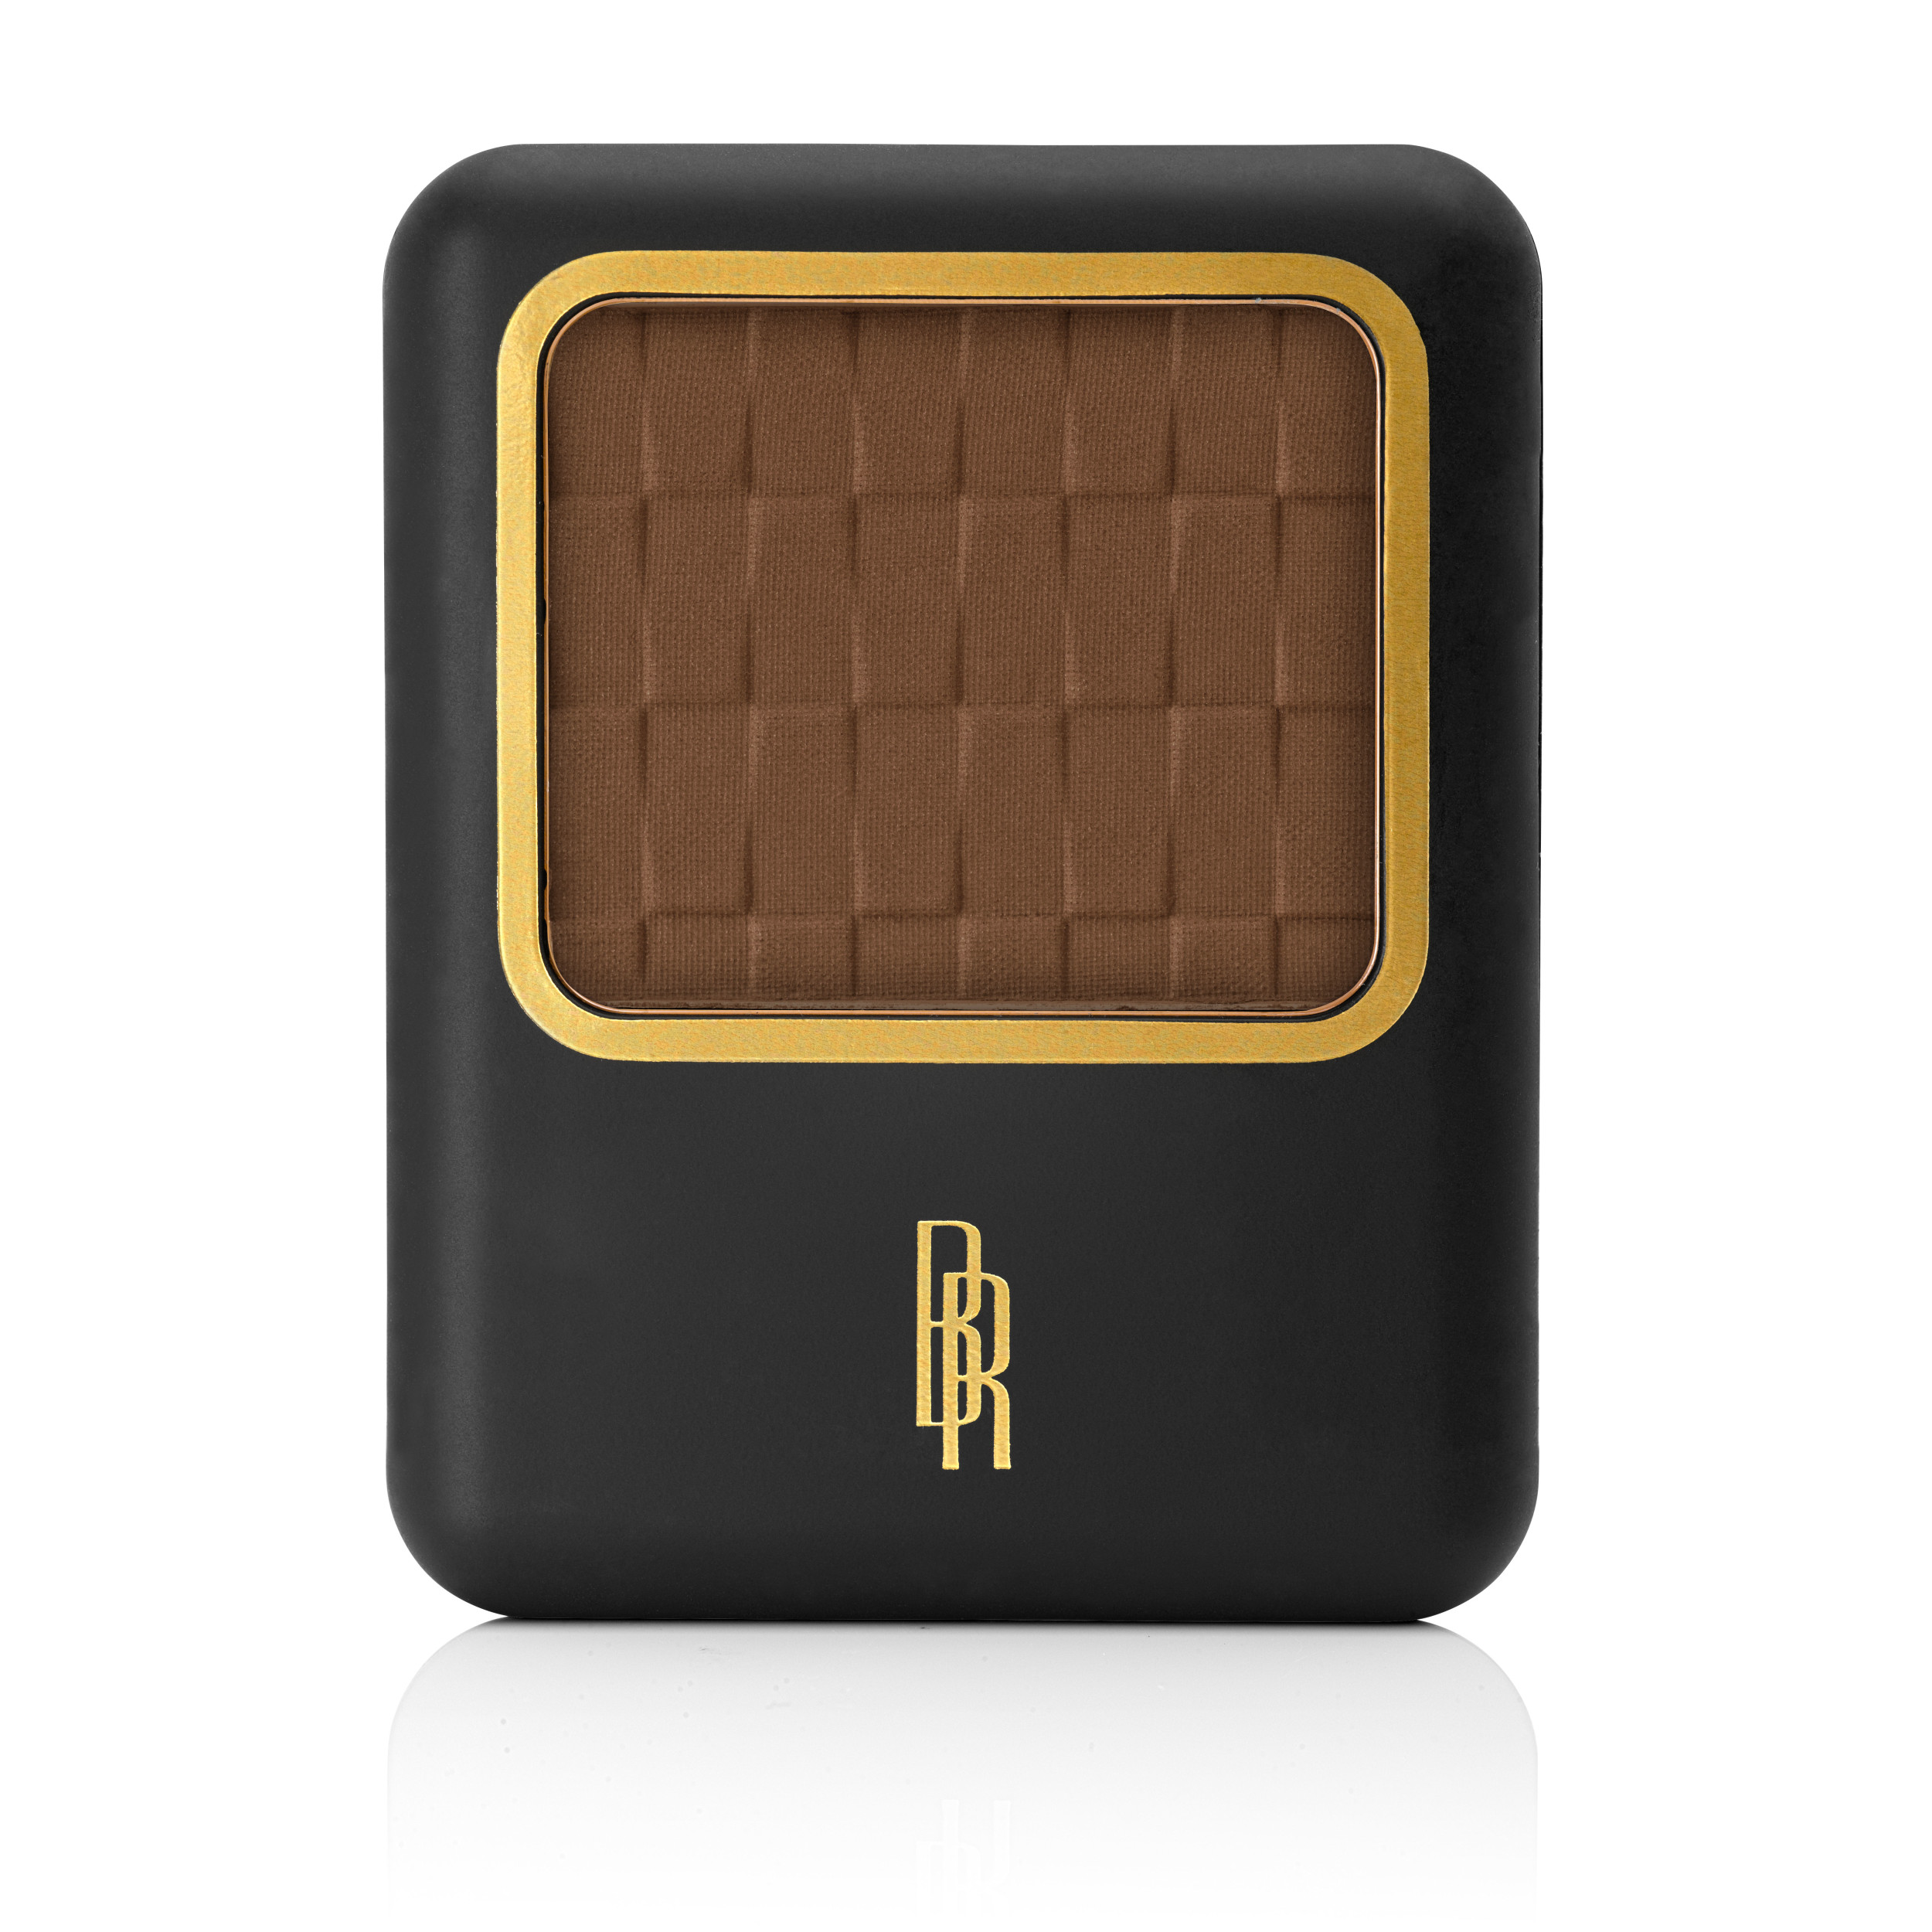 Black Radiance Pressed Powder, Ebony (Deep) by Black Radiance